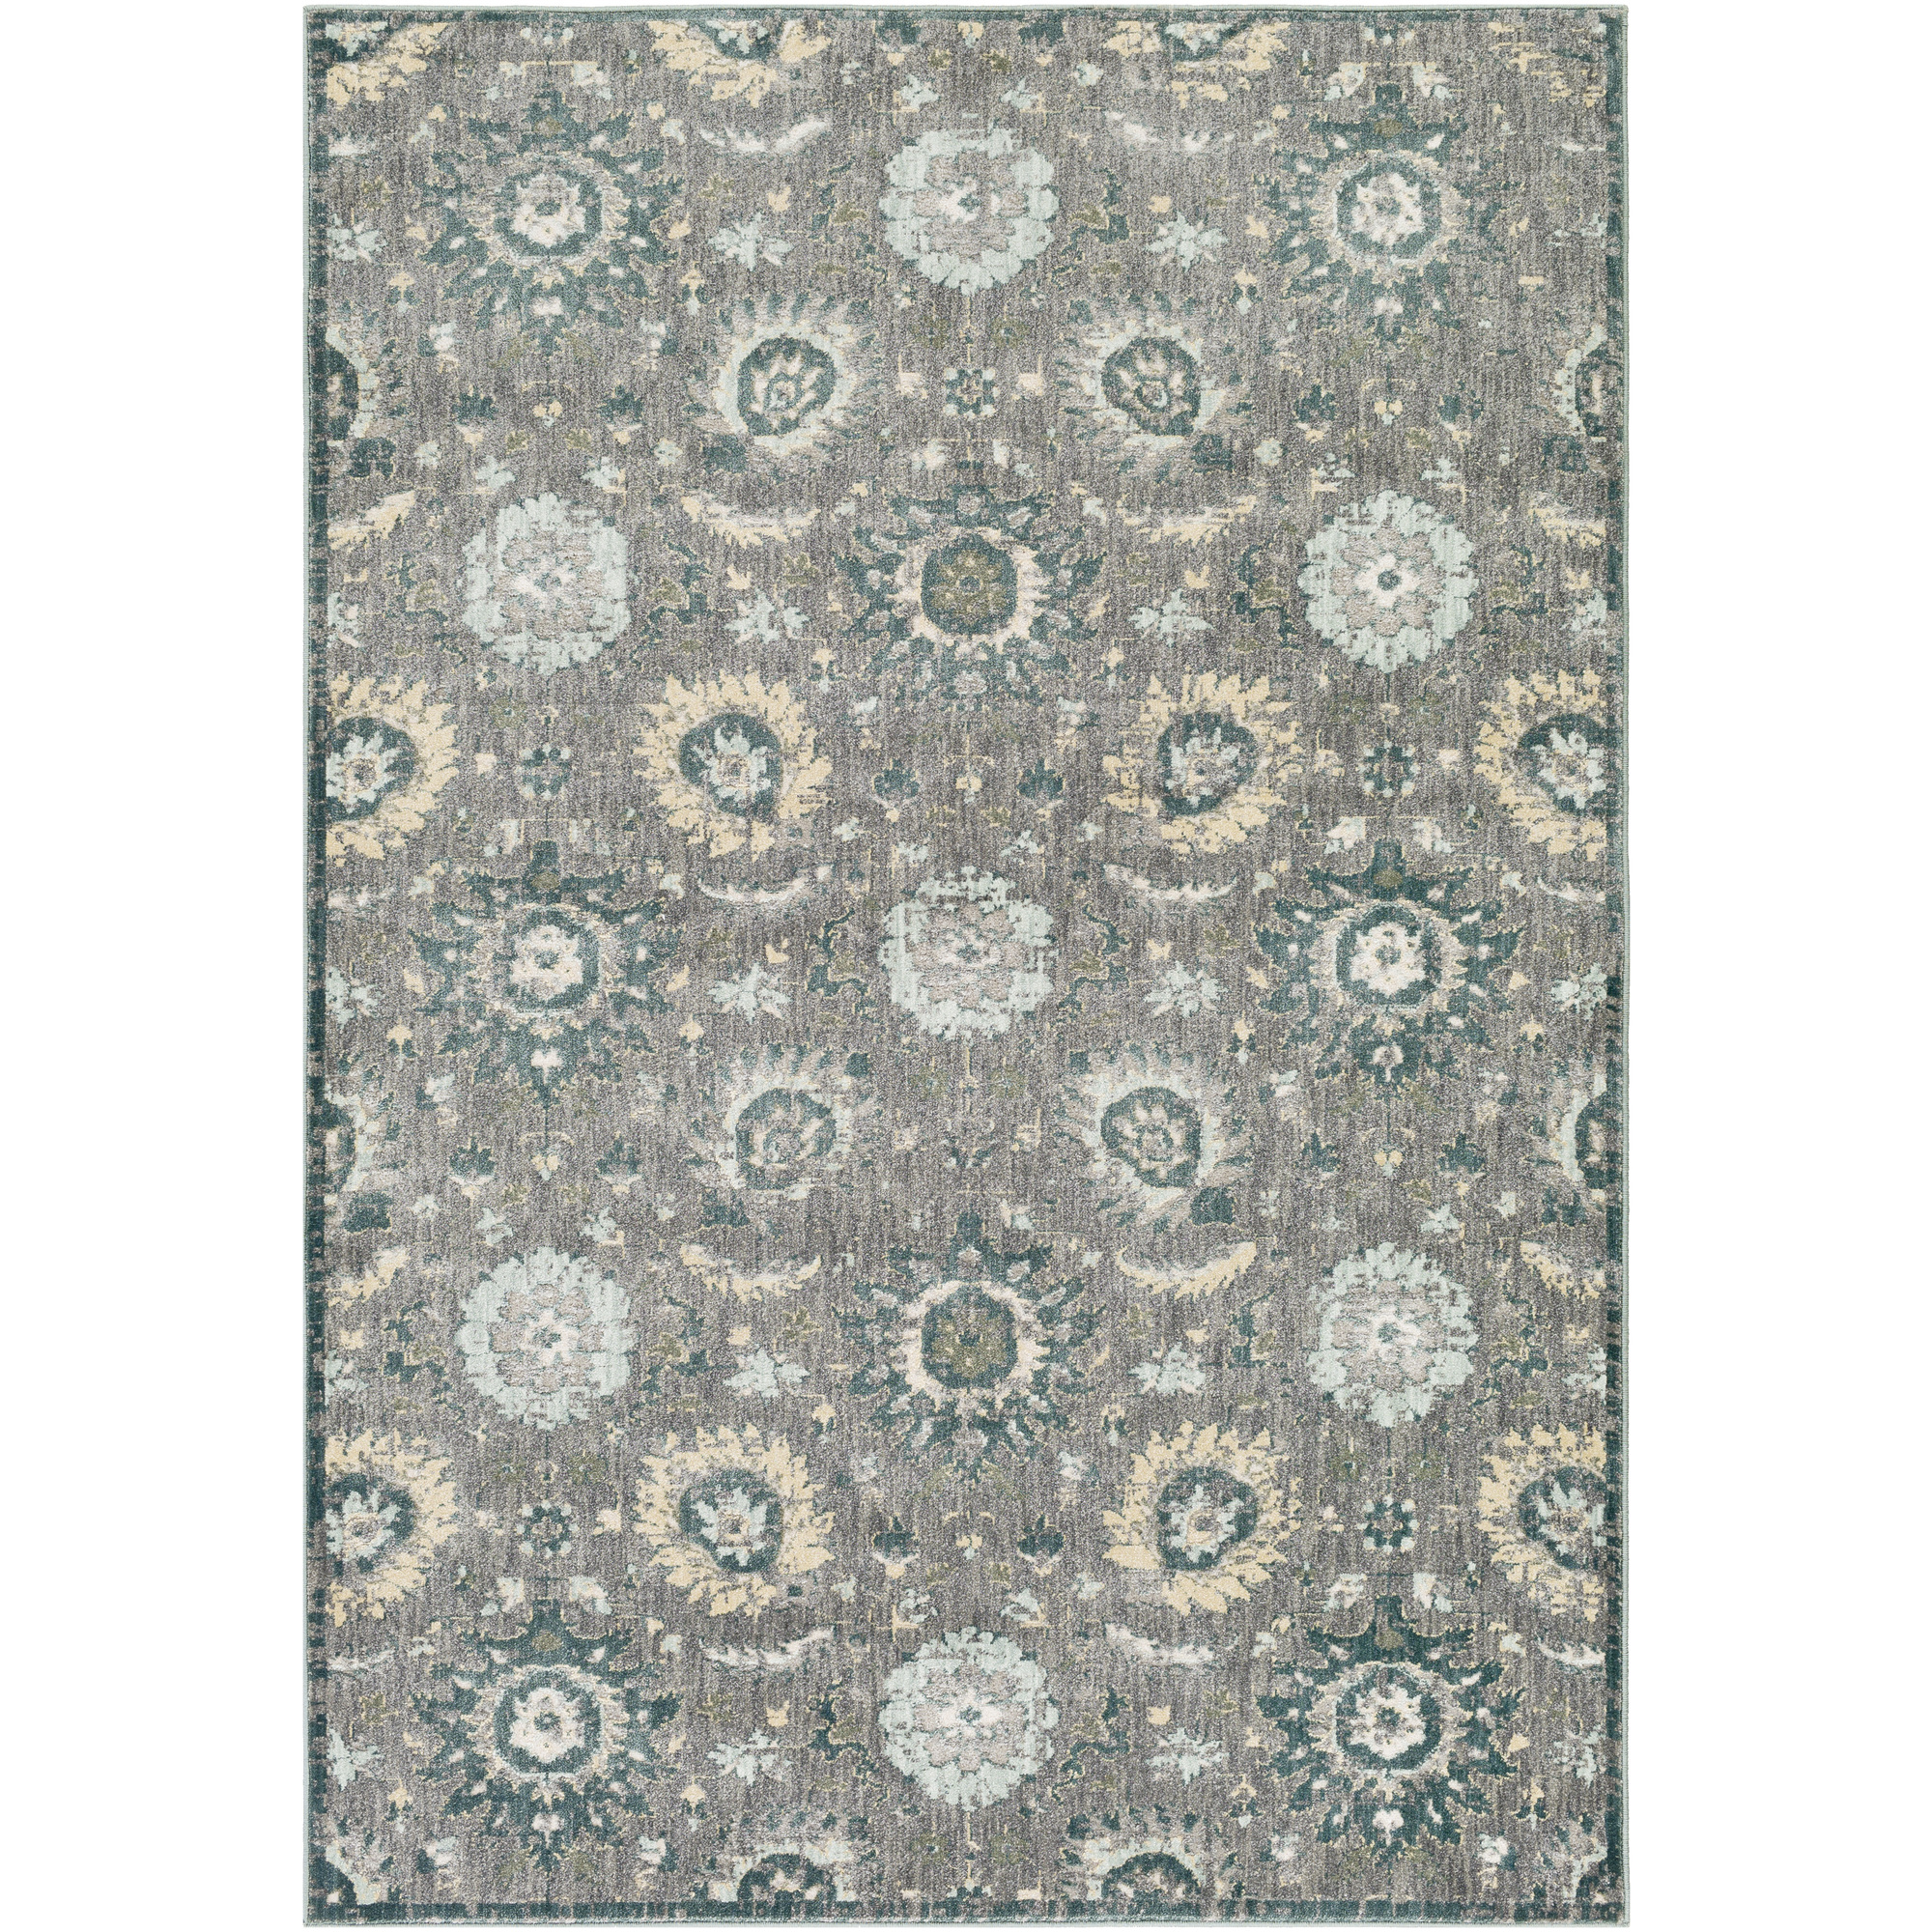 "Art of Knot Braedyn 1'10"" x 2'11"" Rectangular Area Rug"